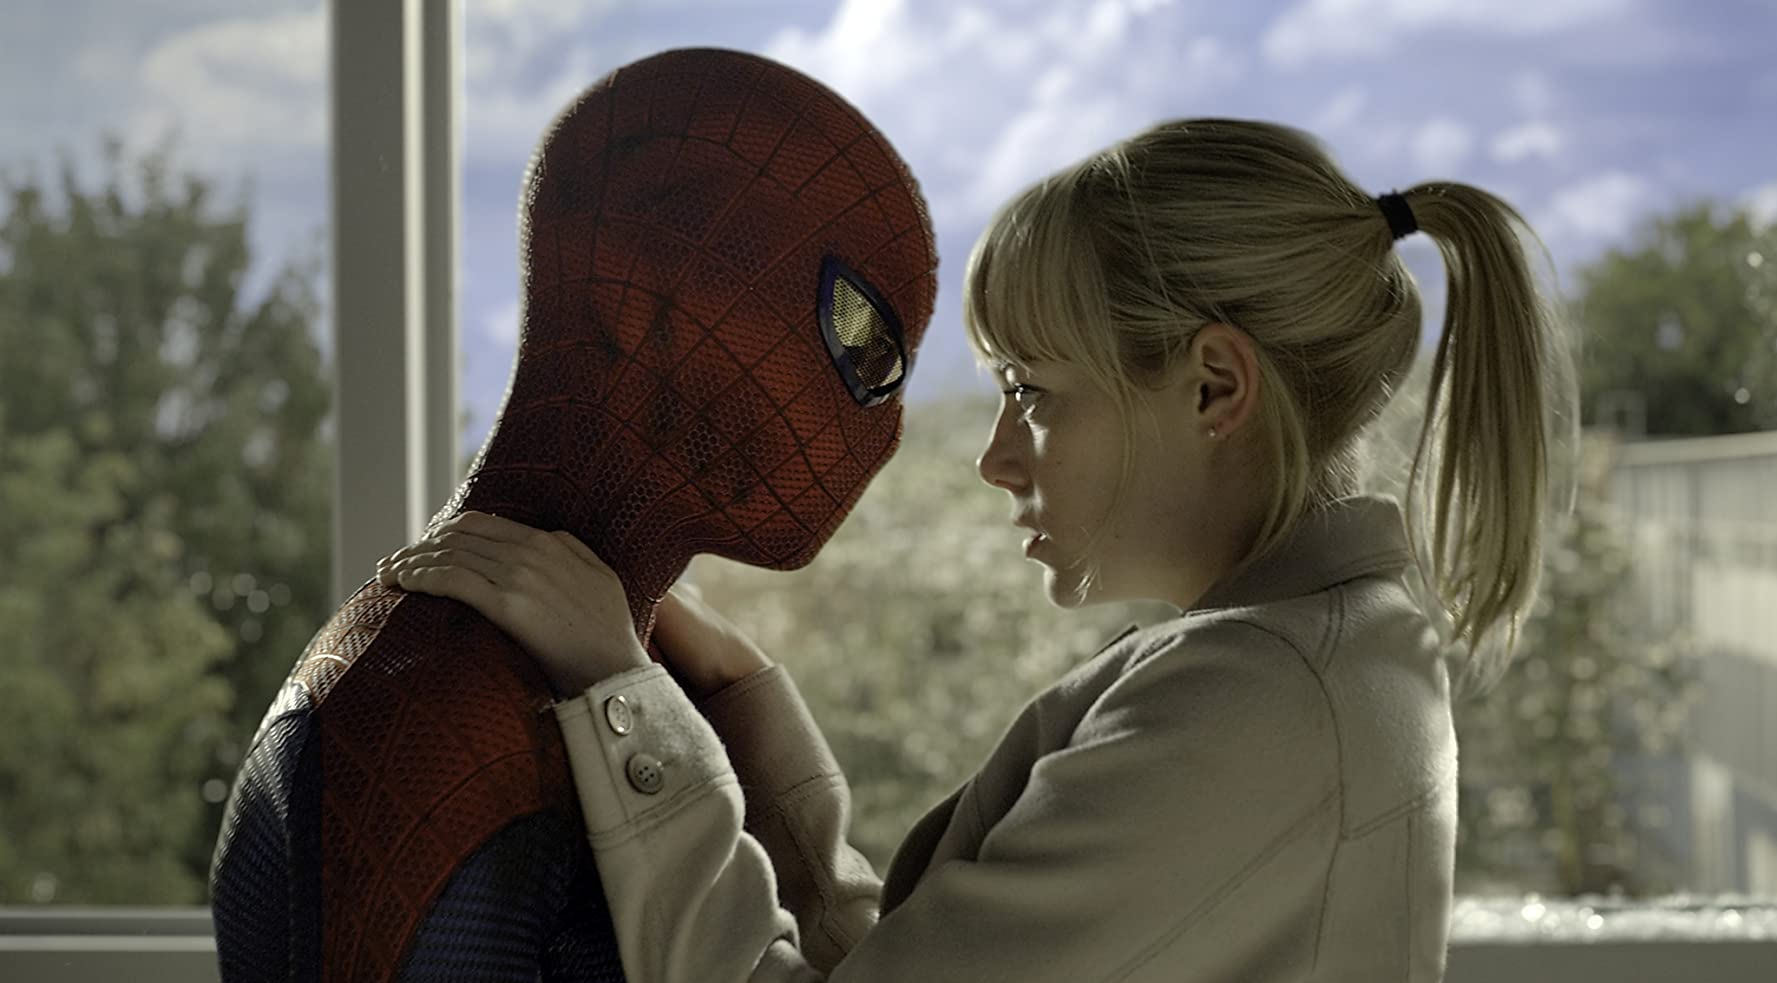 Emma Stone and Andrew Garfield in The Amazing Spider-Man (2012)